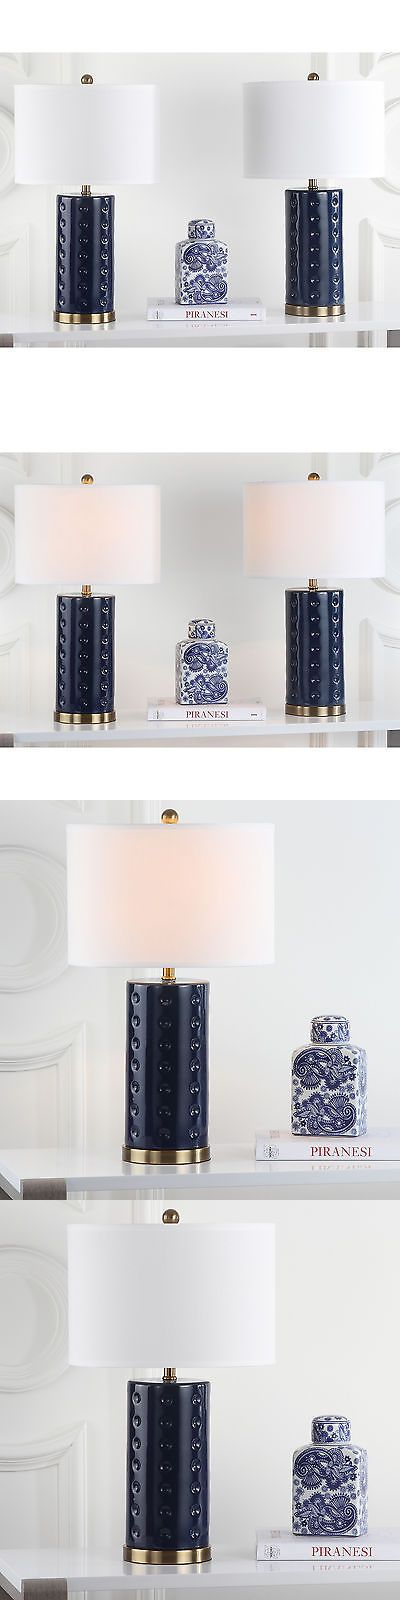 Lamps 112581: Safavieh Lighting 26-Inch Navy Roxanne Table Lamp (Set Of 2) -> BUY IT NOW ONLY: $125.54 on eBay!